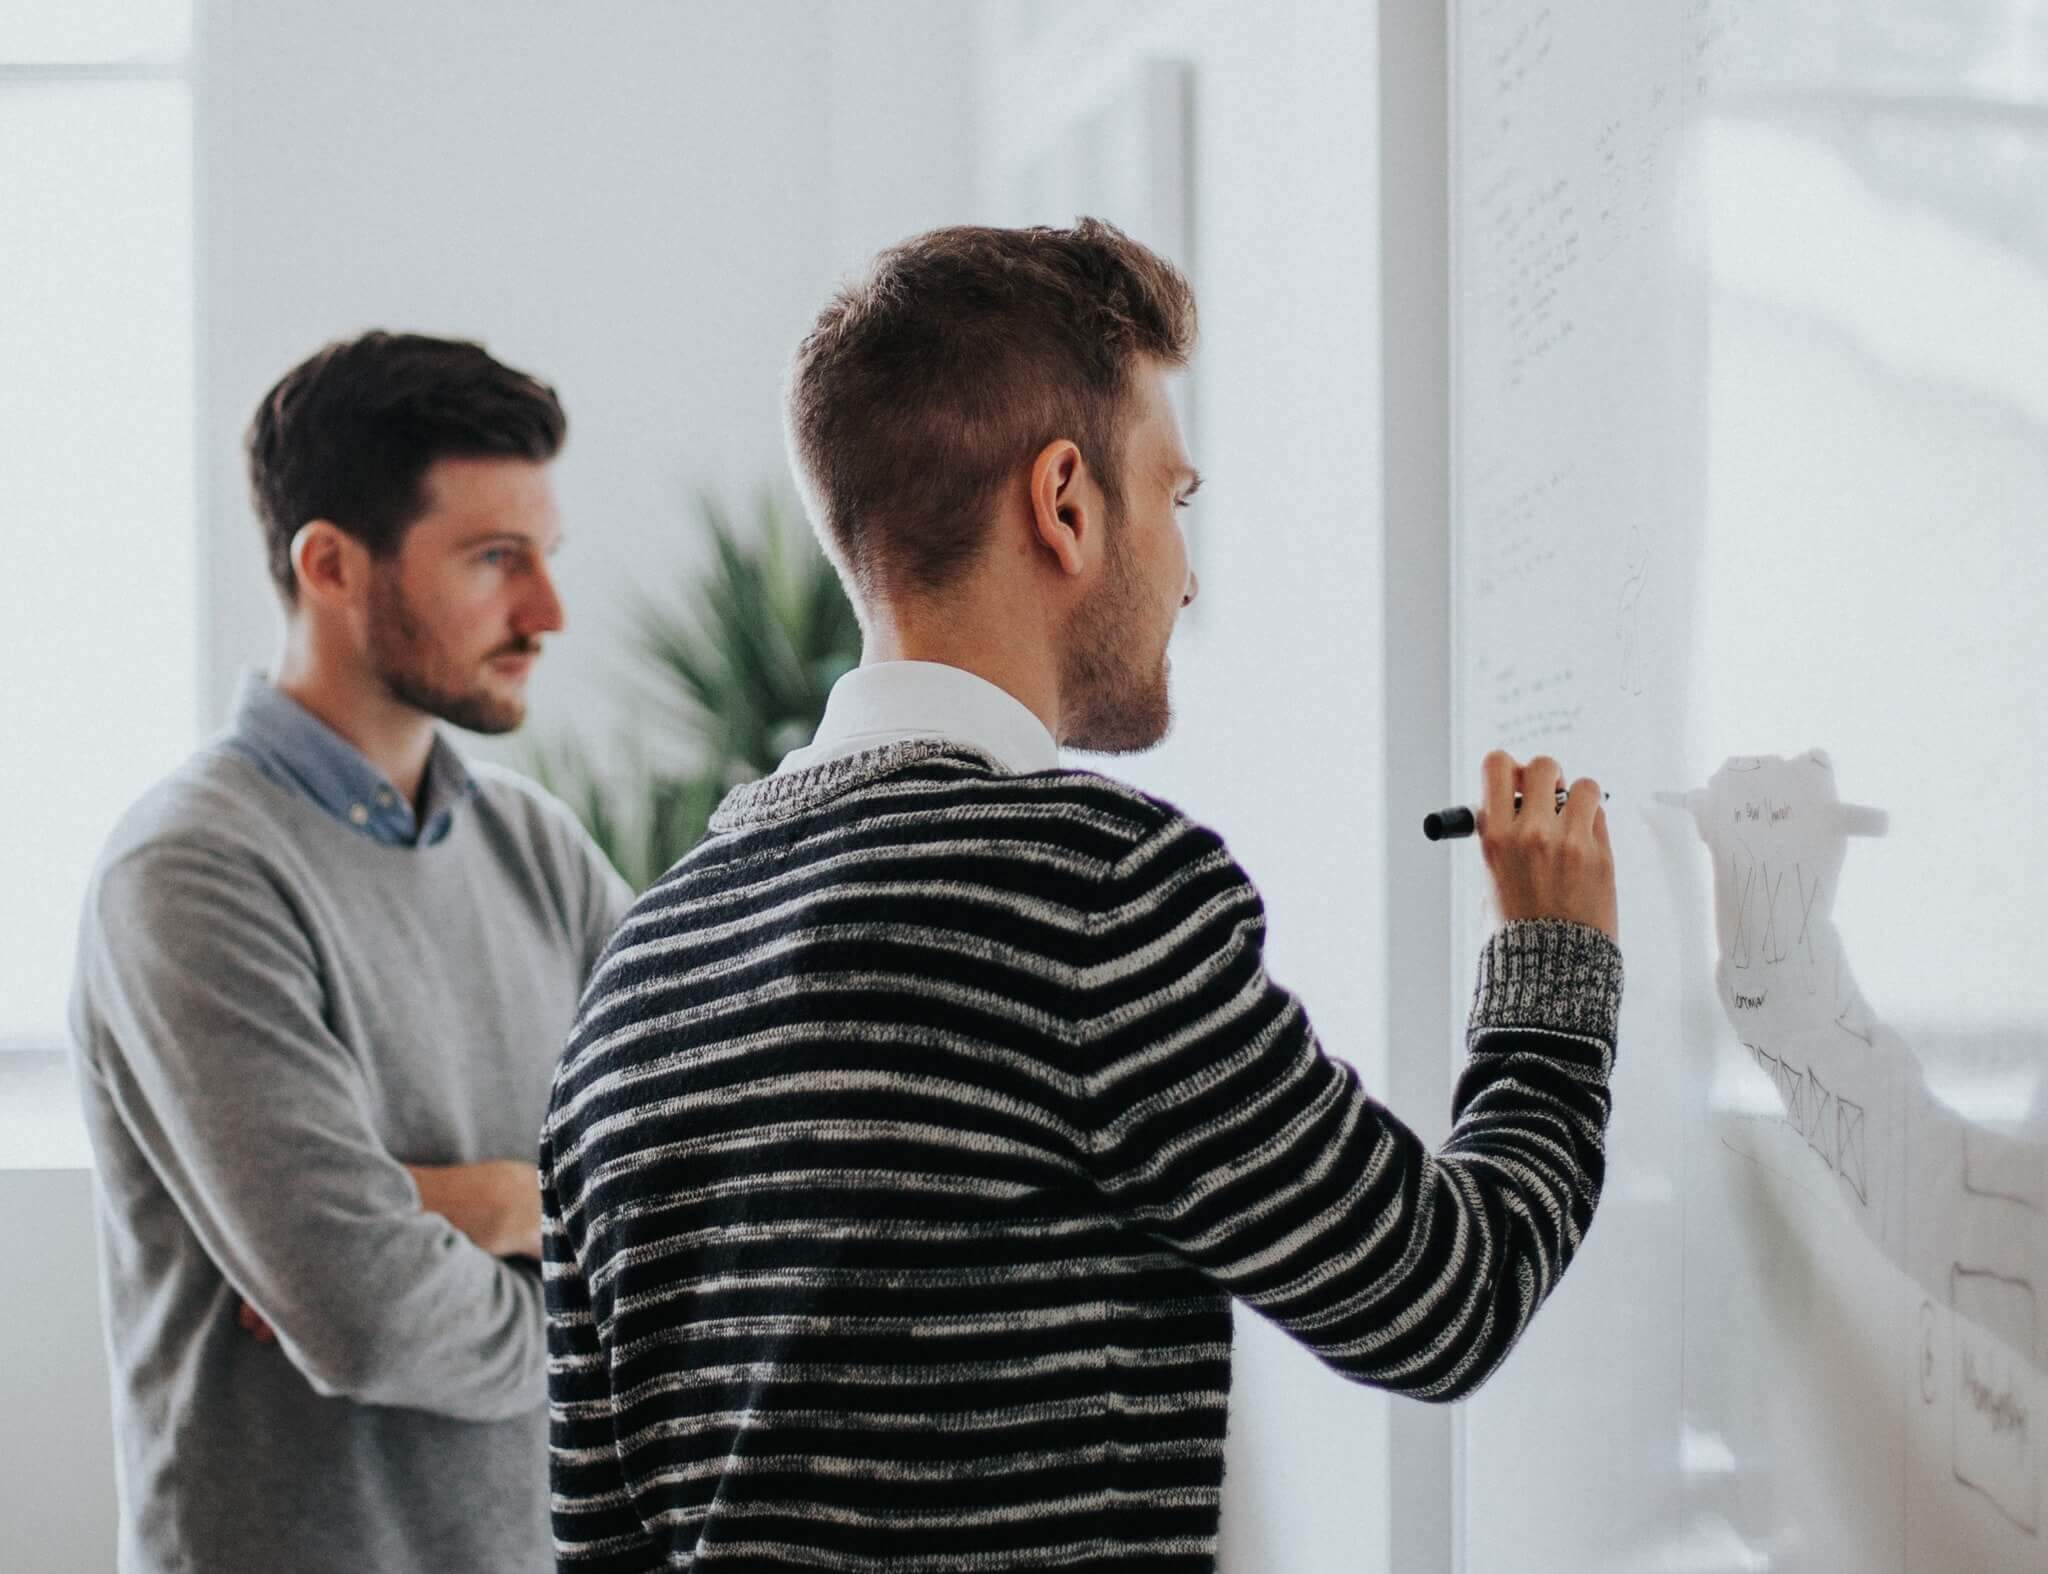 Two male engineers writing on a whiteboard